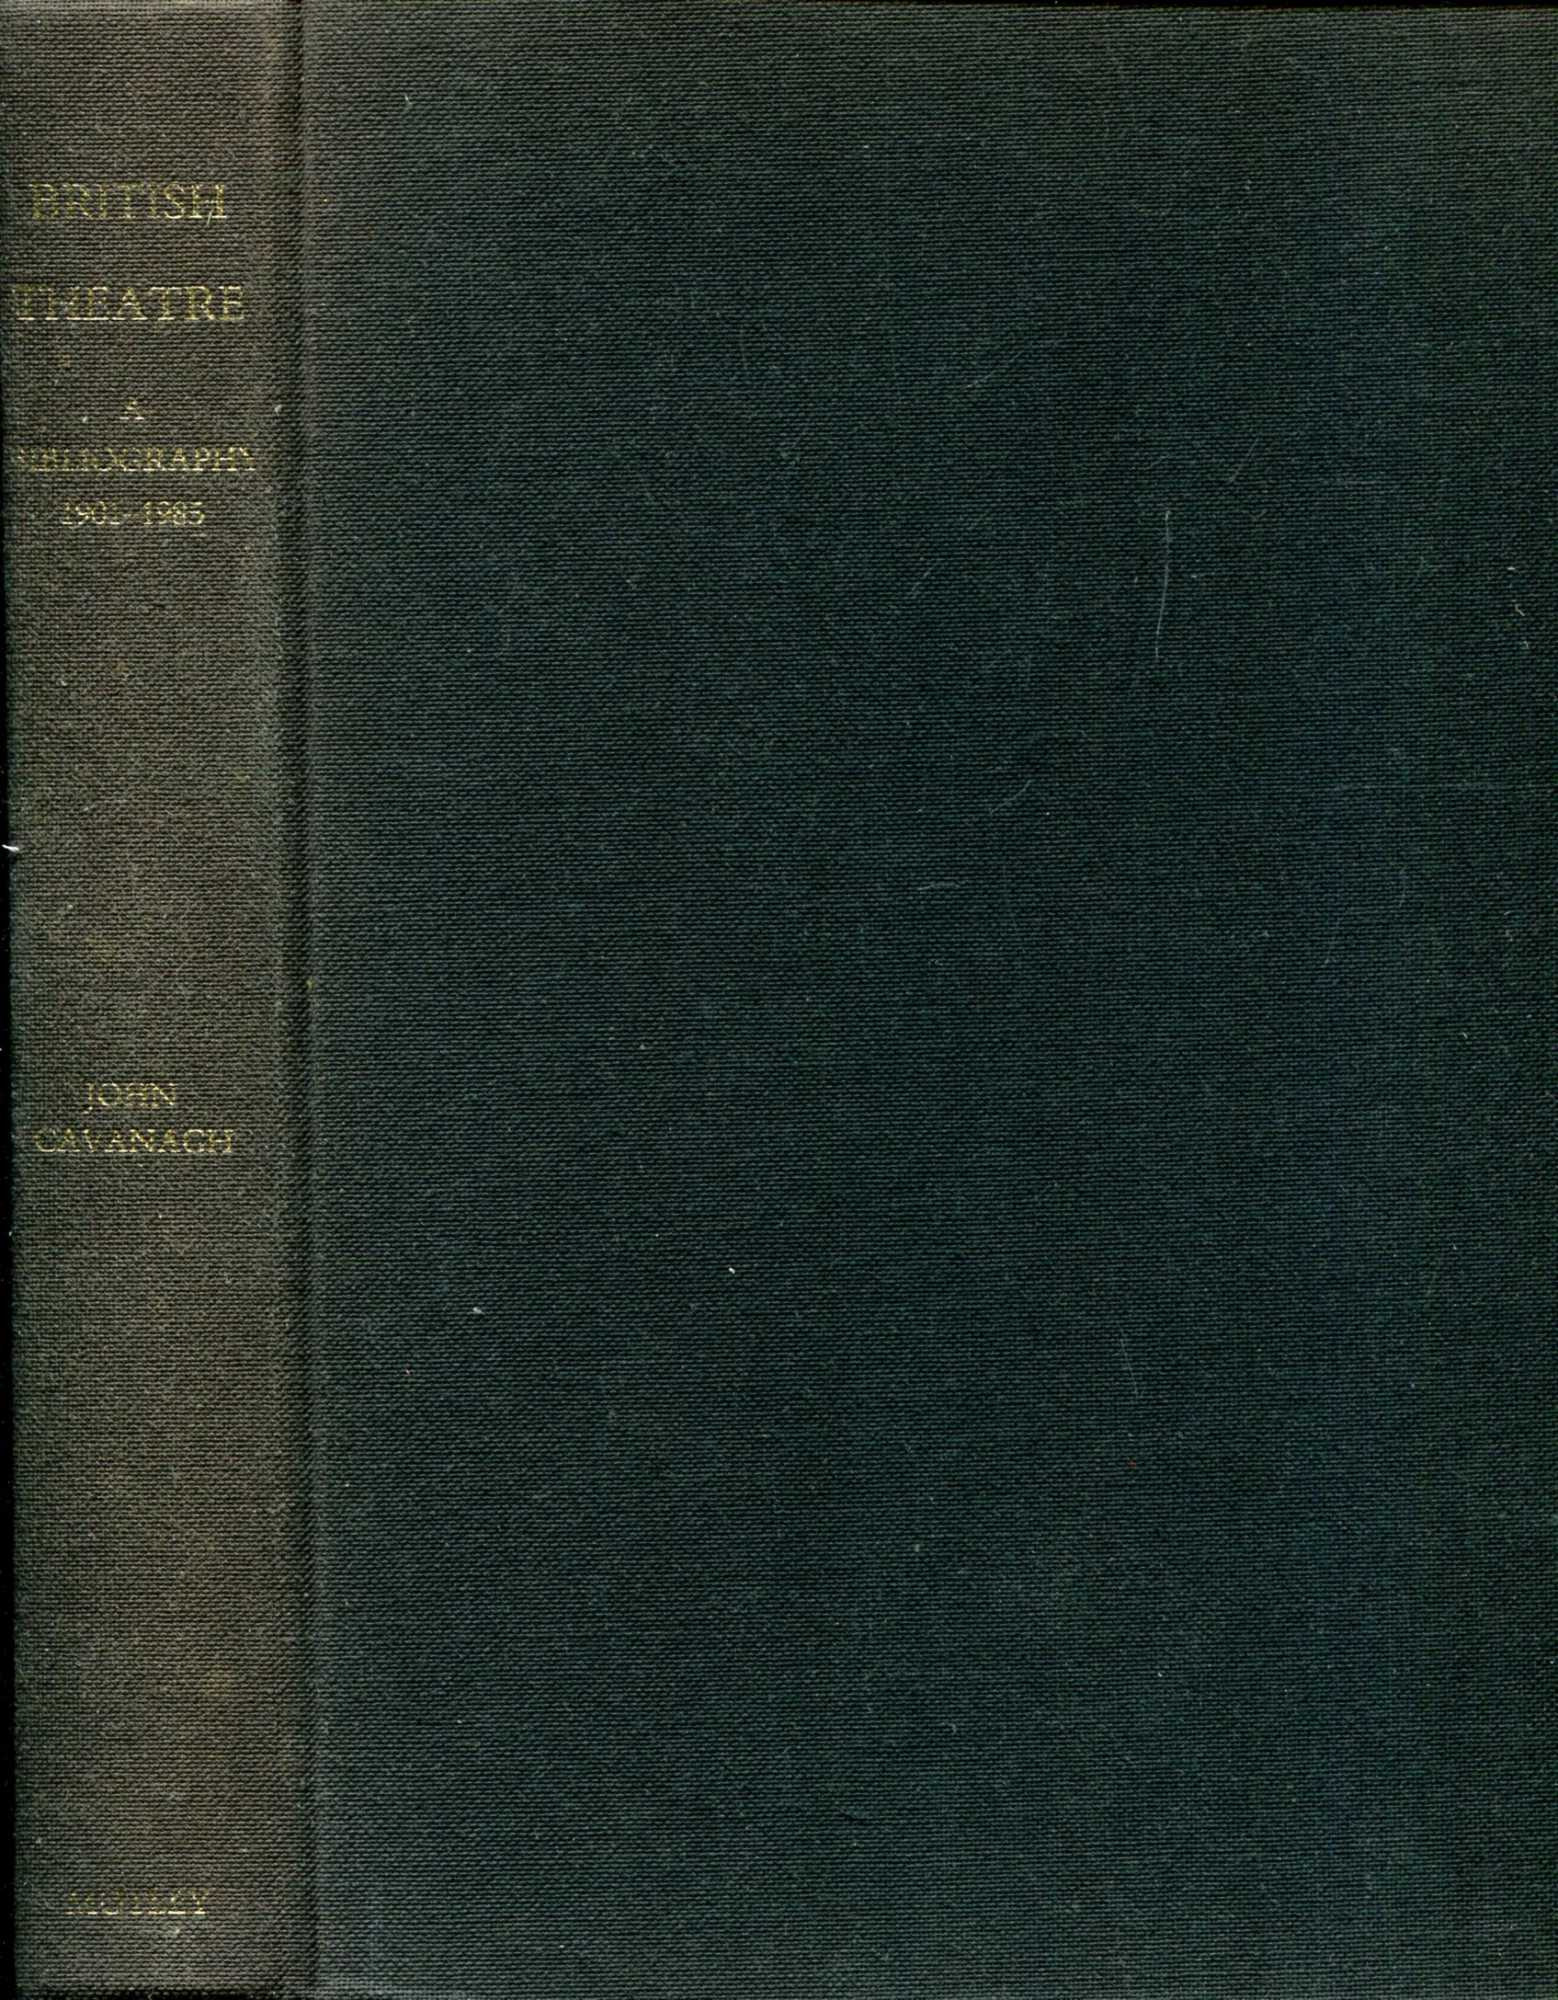 Image for British Theatre: A bibliography, 1901 to 1985